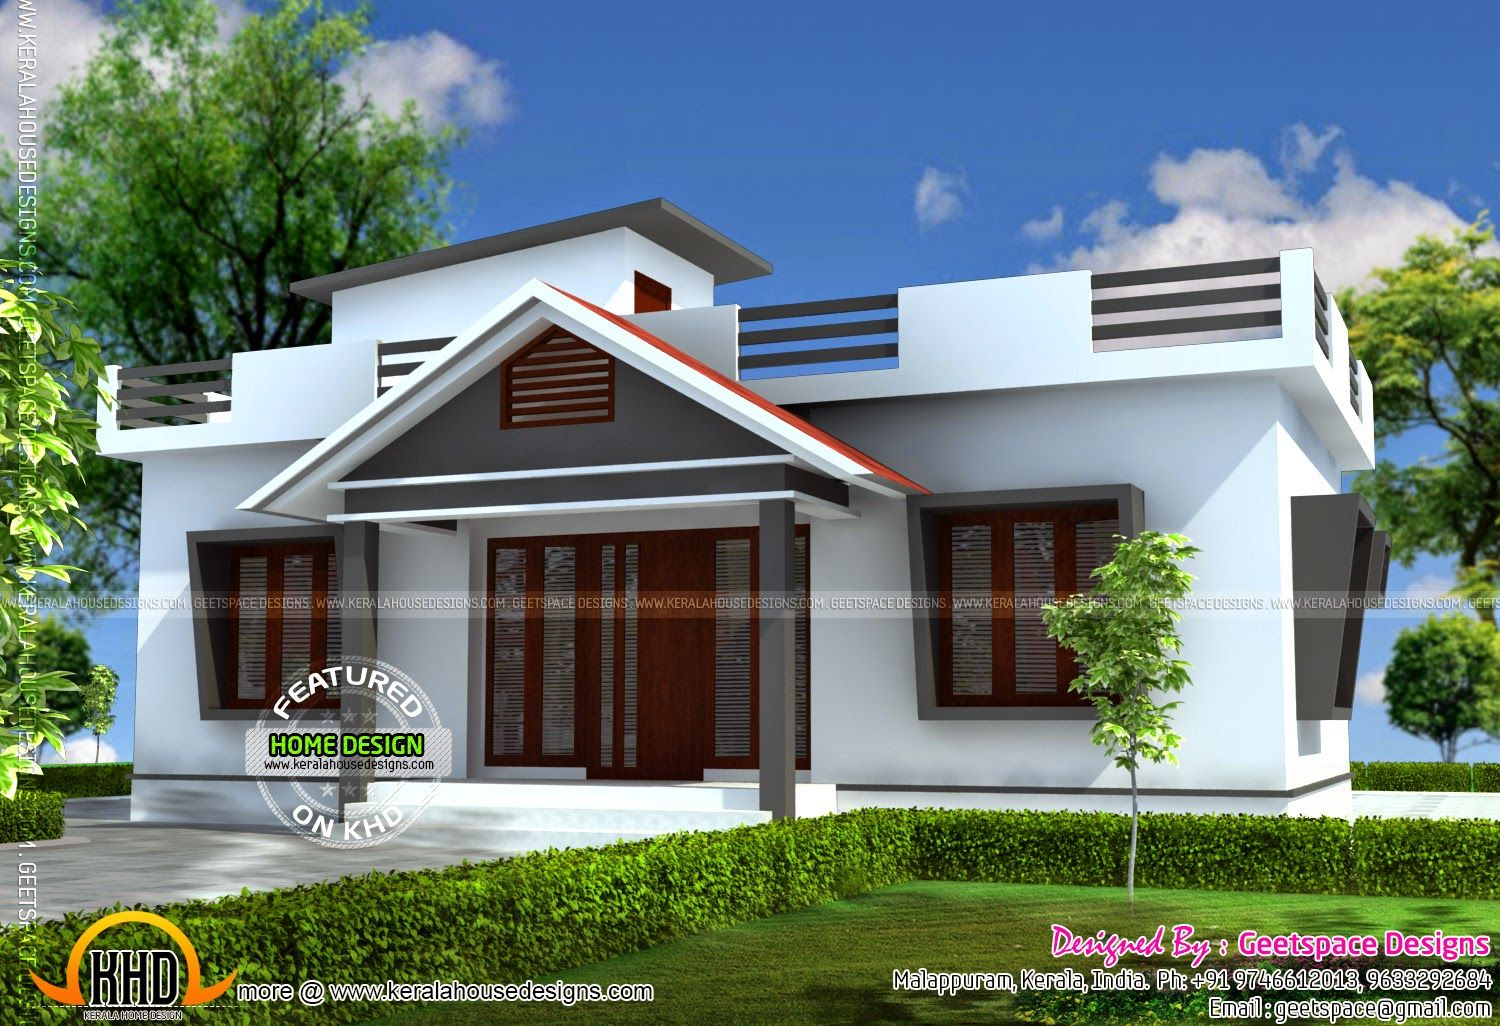 Small house in square kerala home design and plans images also best ideas cottage rh pinterest